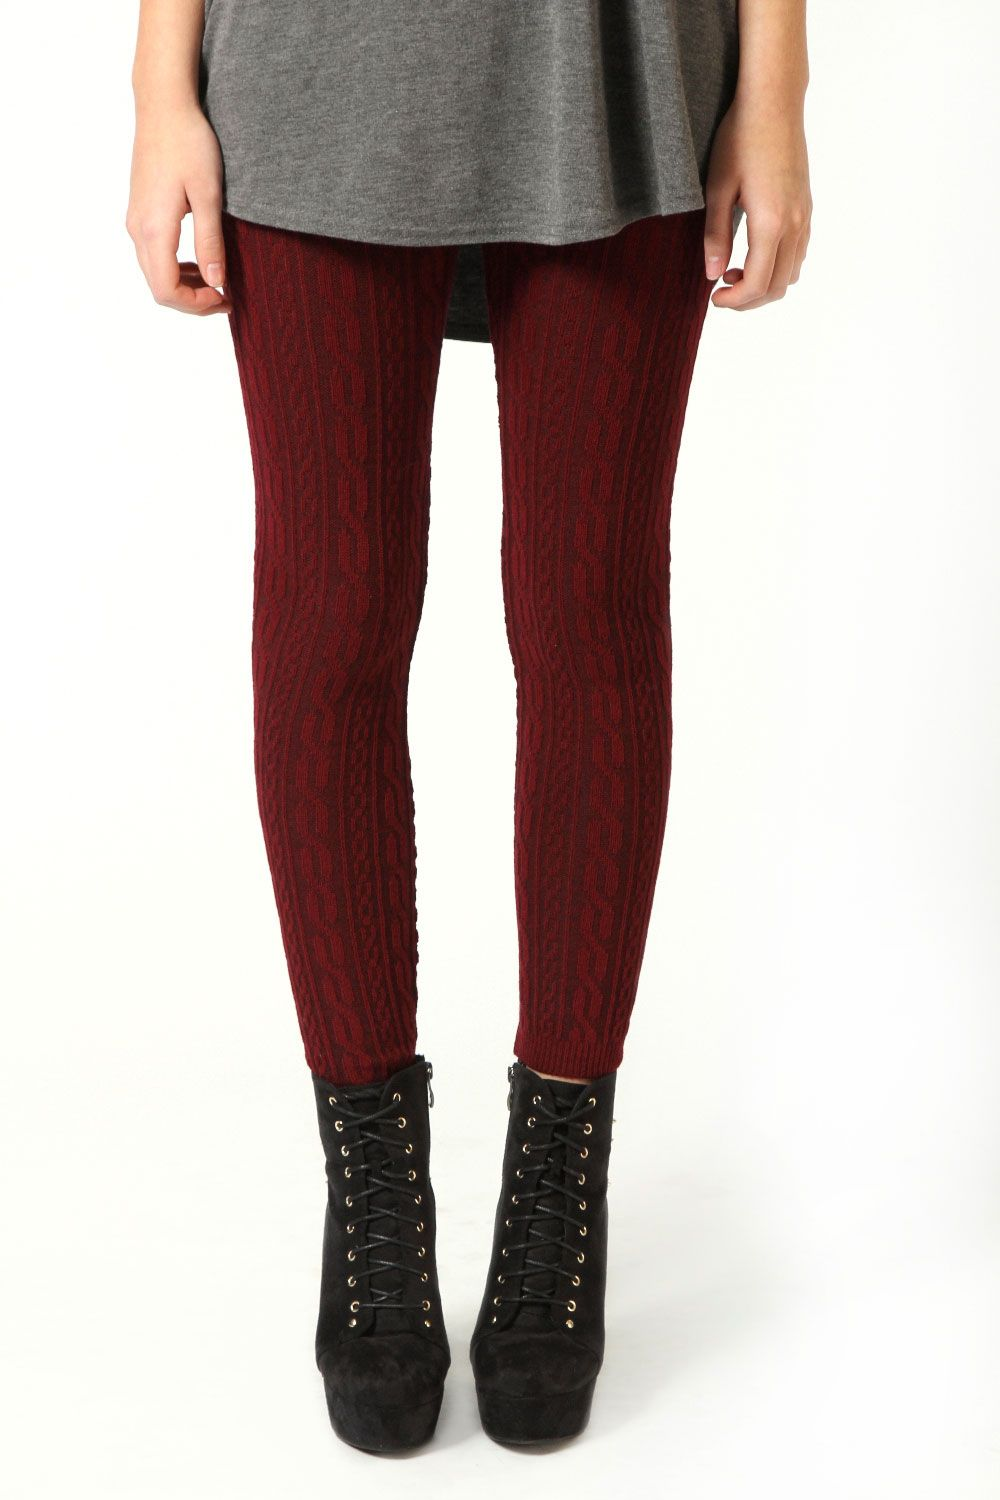 Find great deals on eBay for wool thick leggings. Shop with confidence.